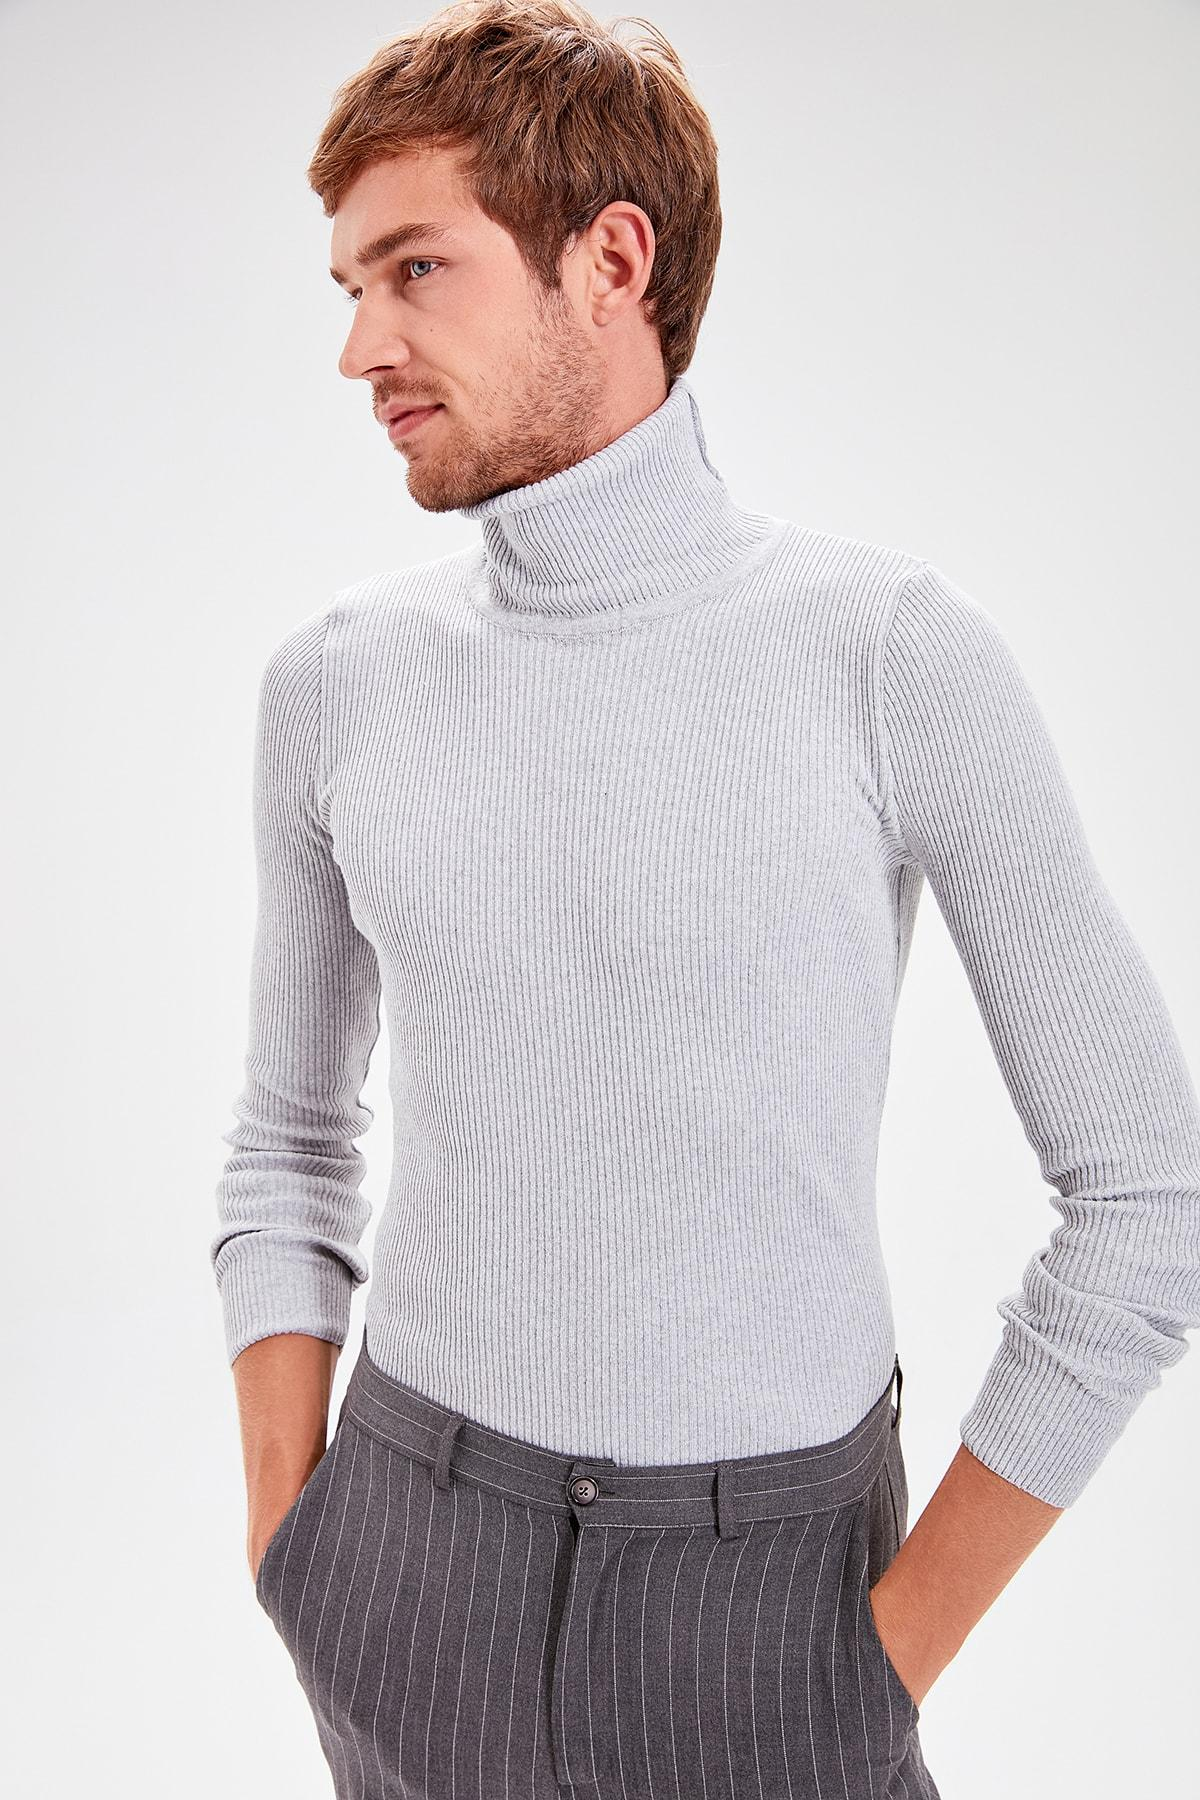 Trendyol Gray Male Rubber Mesh Turtleneck Sweater Sweater TMNAW20MG0031